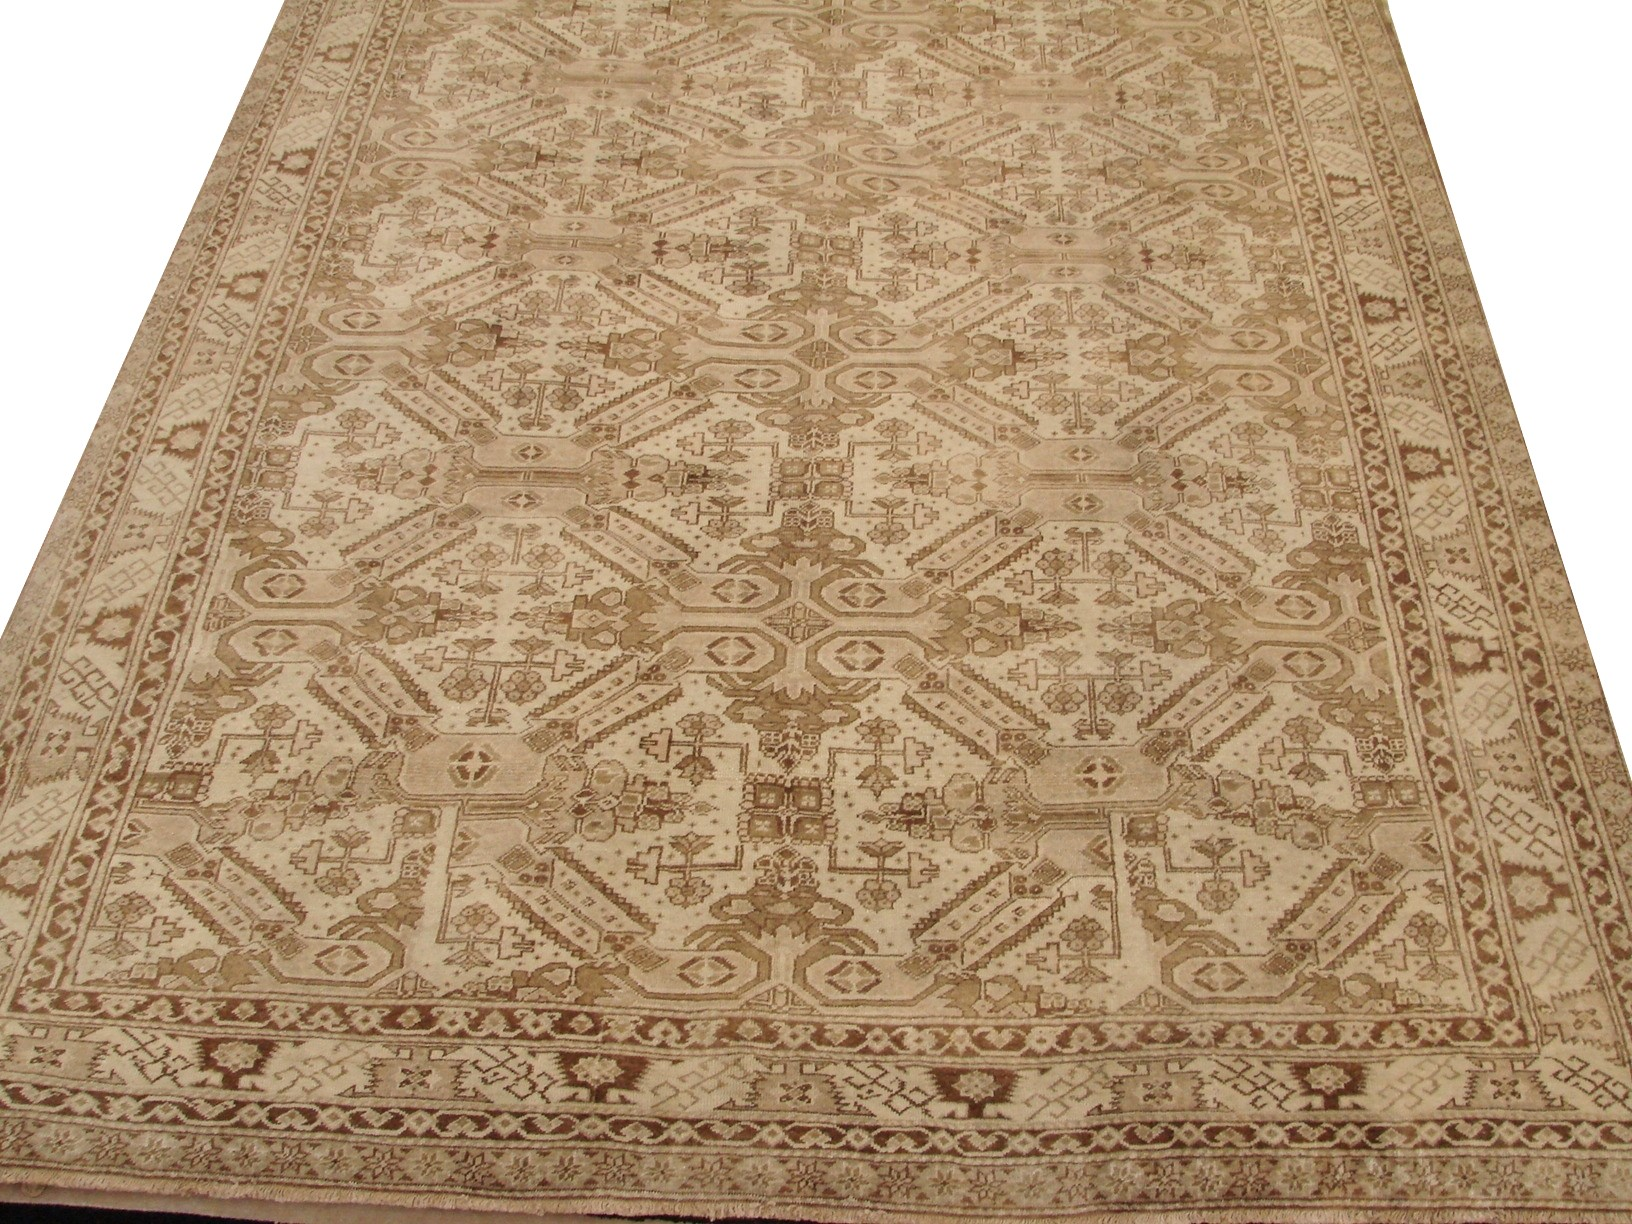 6x9 Oushak Hand Knotted Wool Area Rug - MR16797